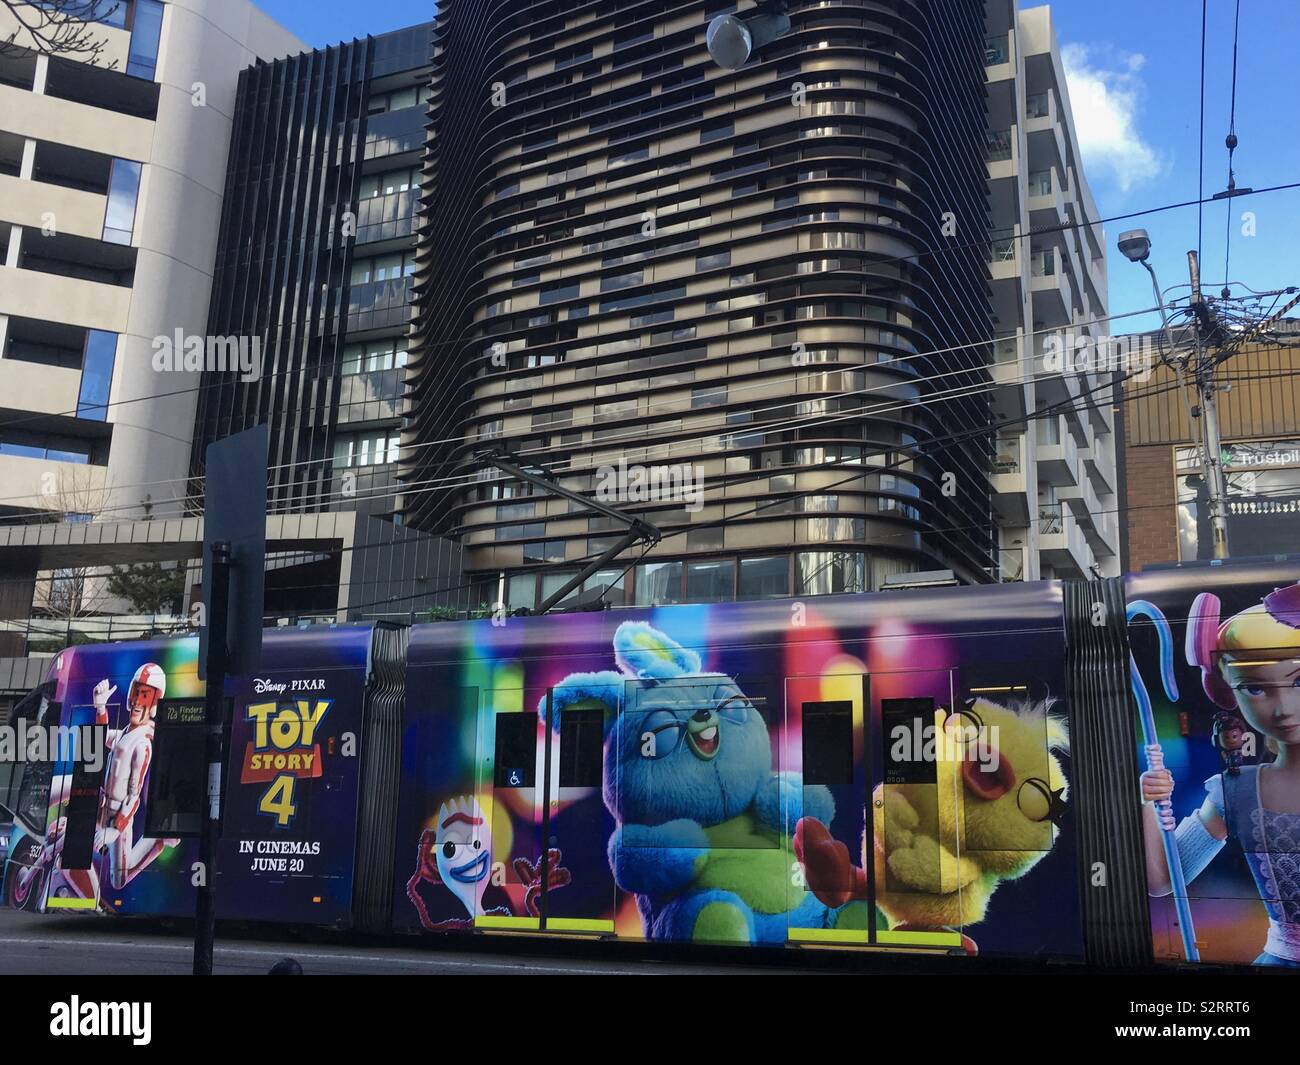 During the Victorian school holidays, a tram displays a vibrant Disney Pixar Toy Story 4 movie advertisement whilst travelling along Commercial Road, South Yarra in the heart of Melbourne City. - Stock Image